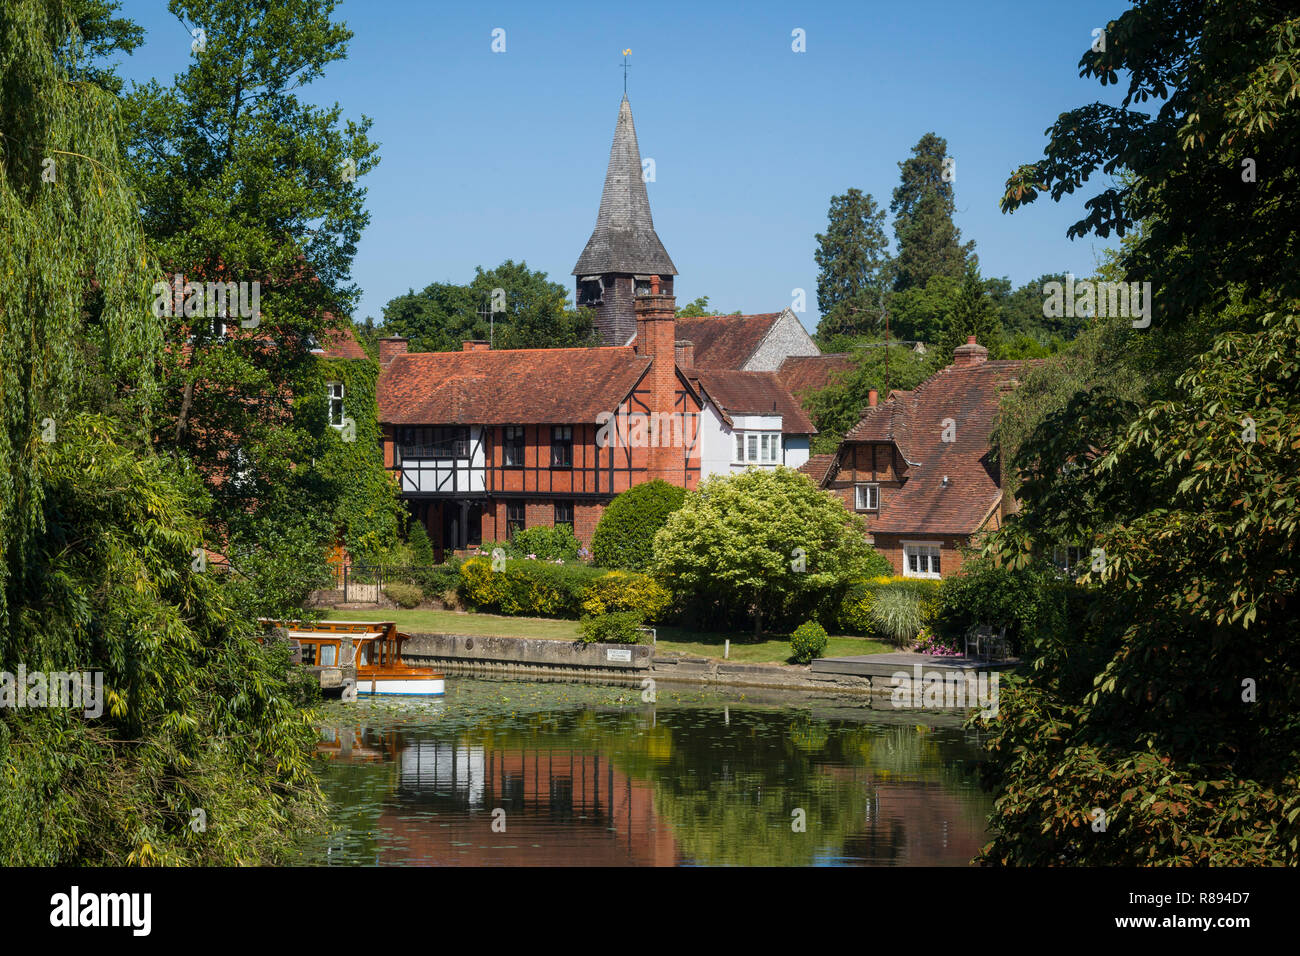 St. Mary's Church at Whitchurch-on-Thames viewed from Pangbourne Toll Bridge Stock Photo